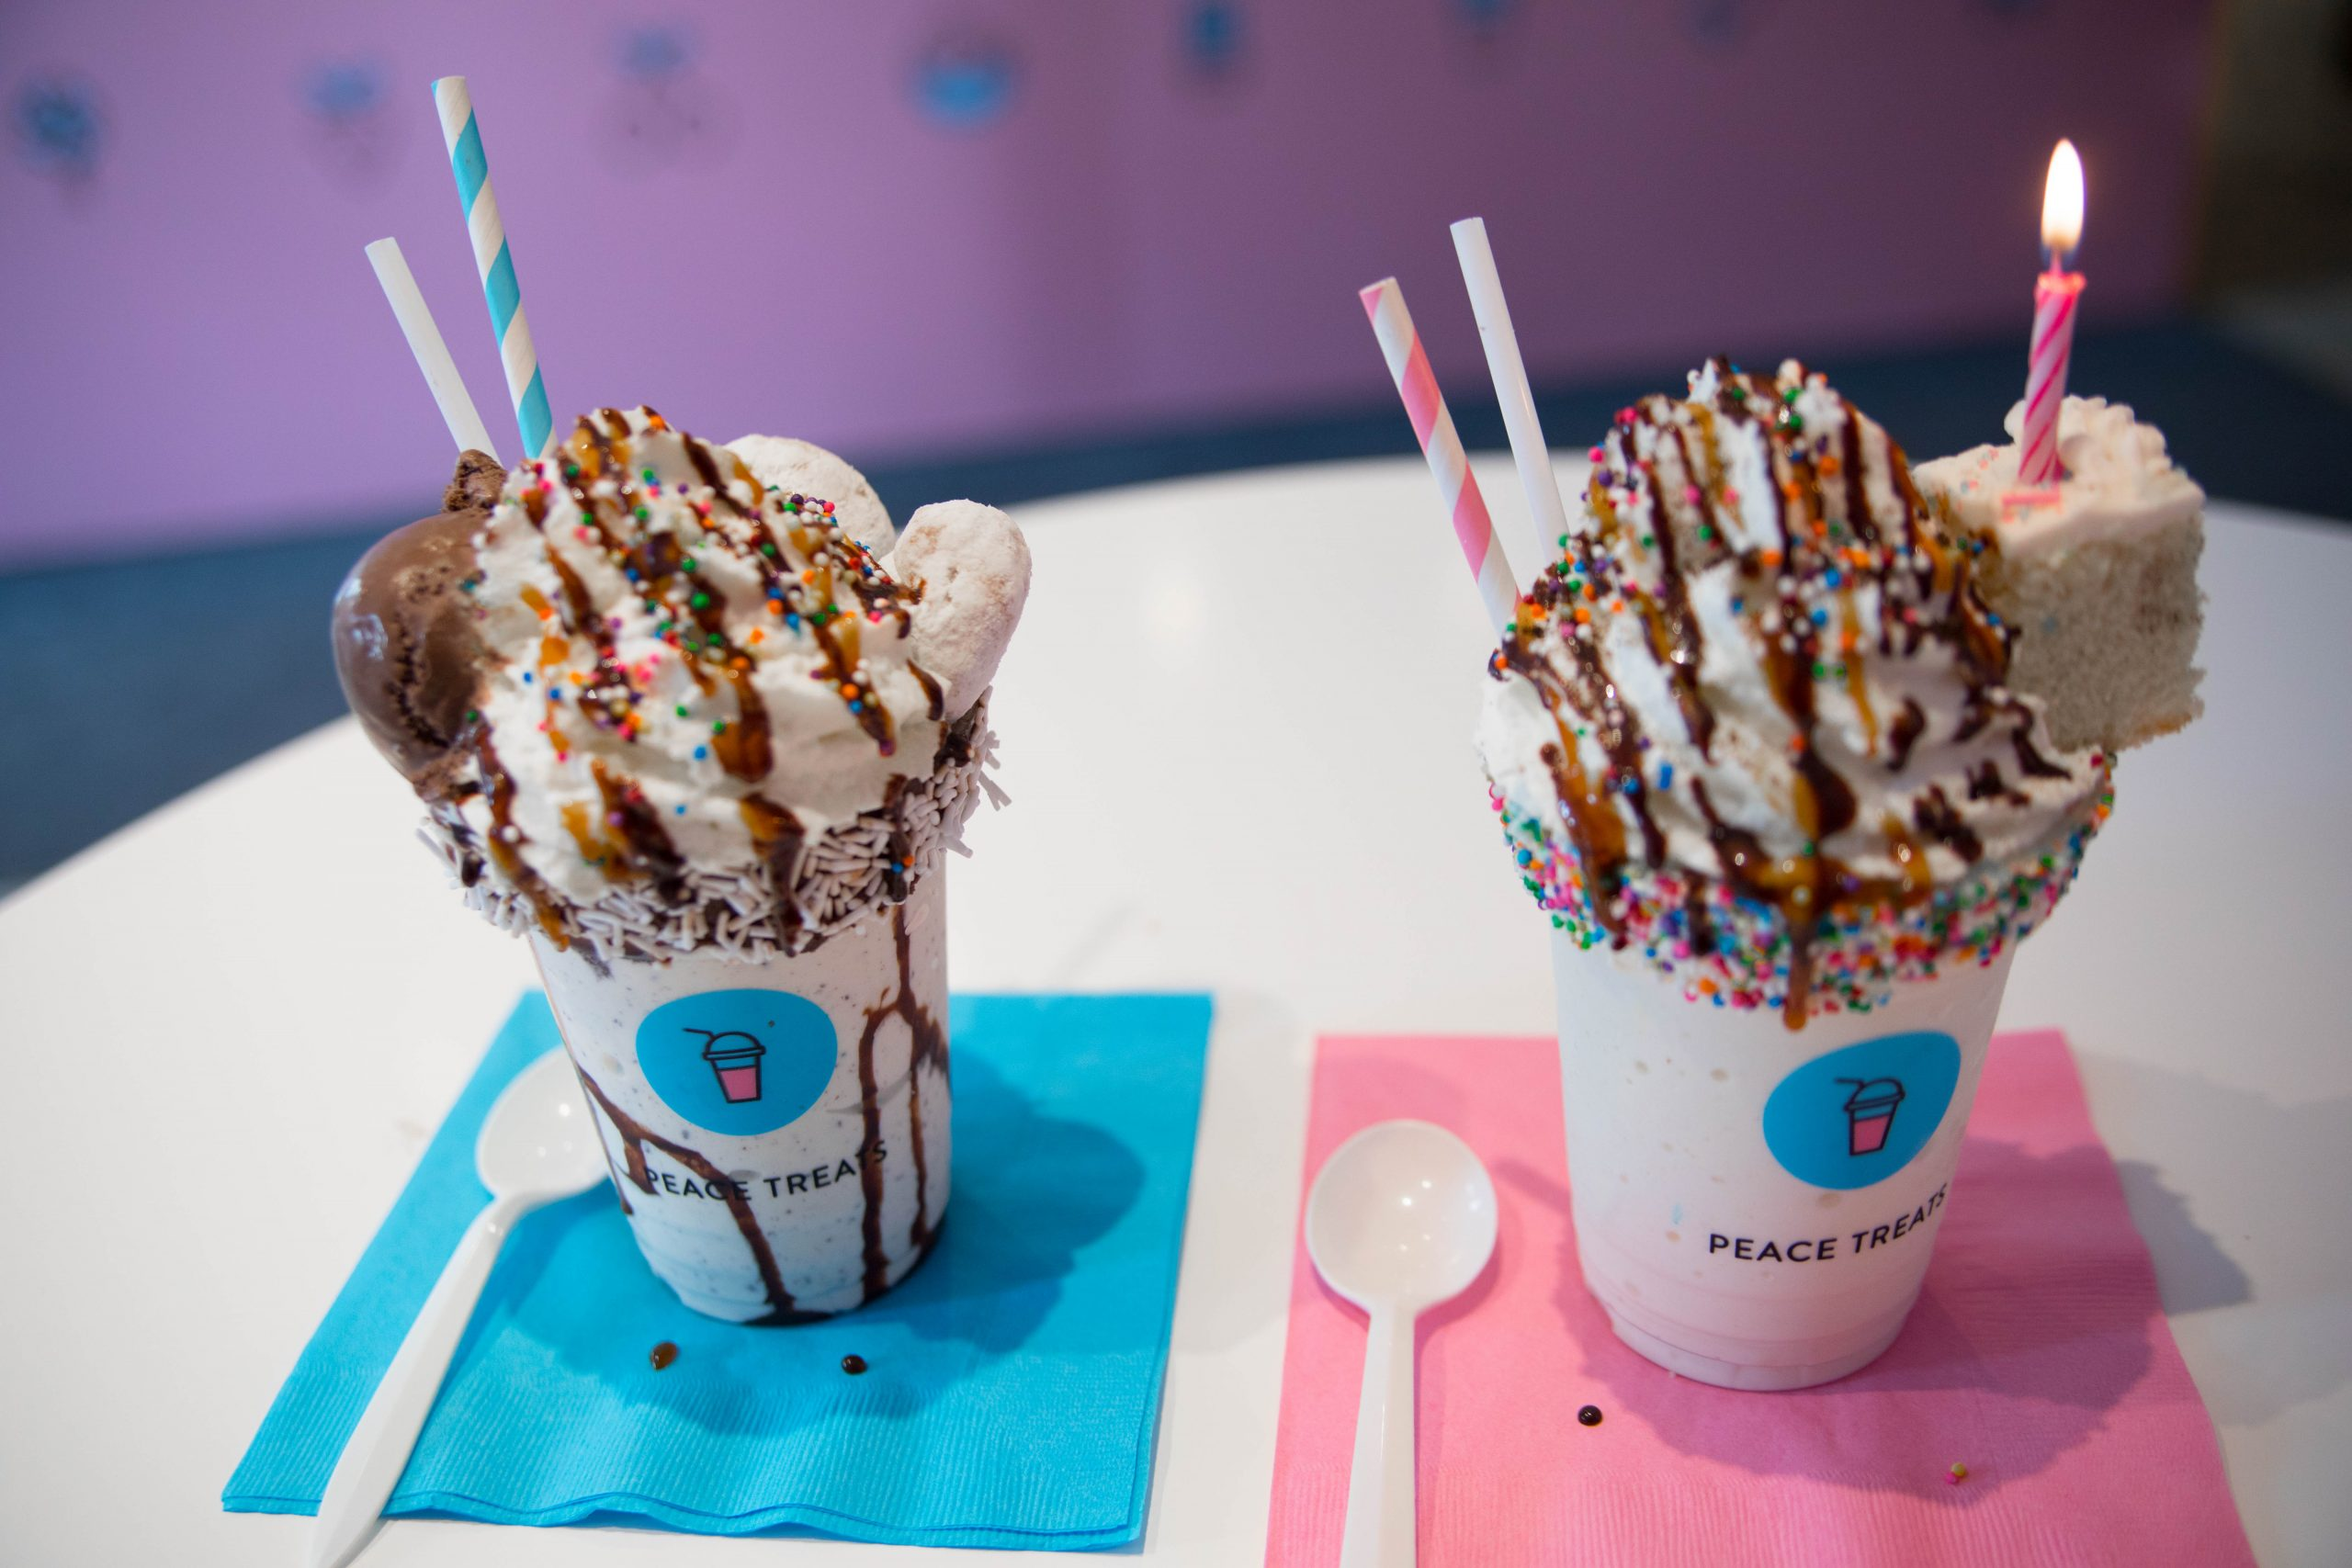 Peace Treats Epic Milk Shakes Toronto Travel Guide Itinerary Photographed by Annie Fairfax